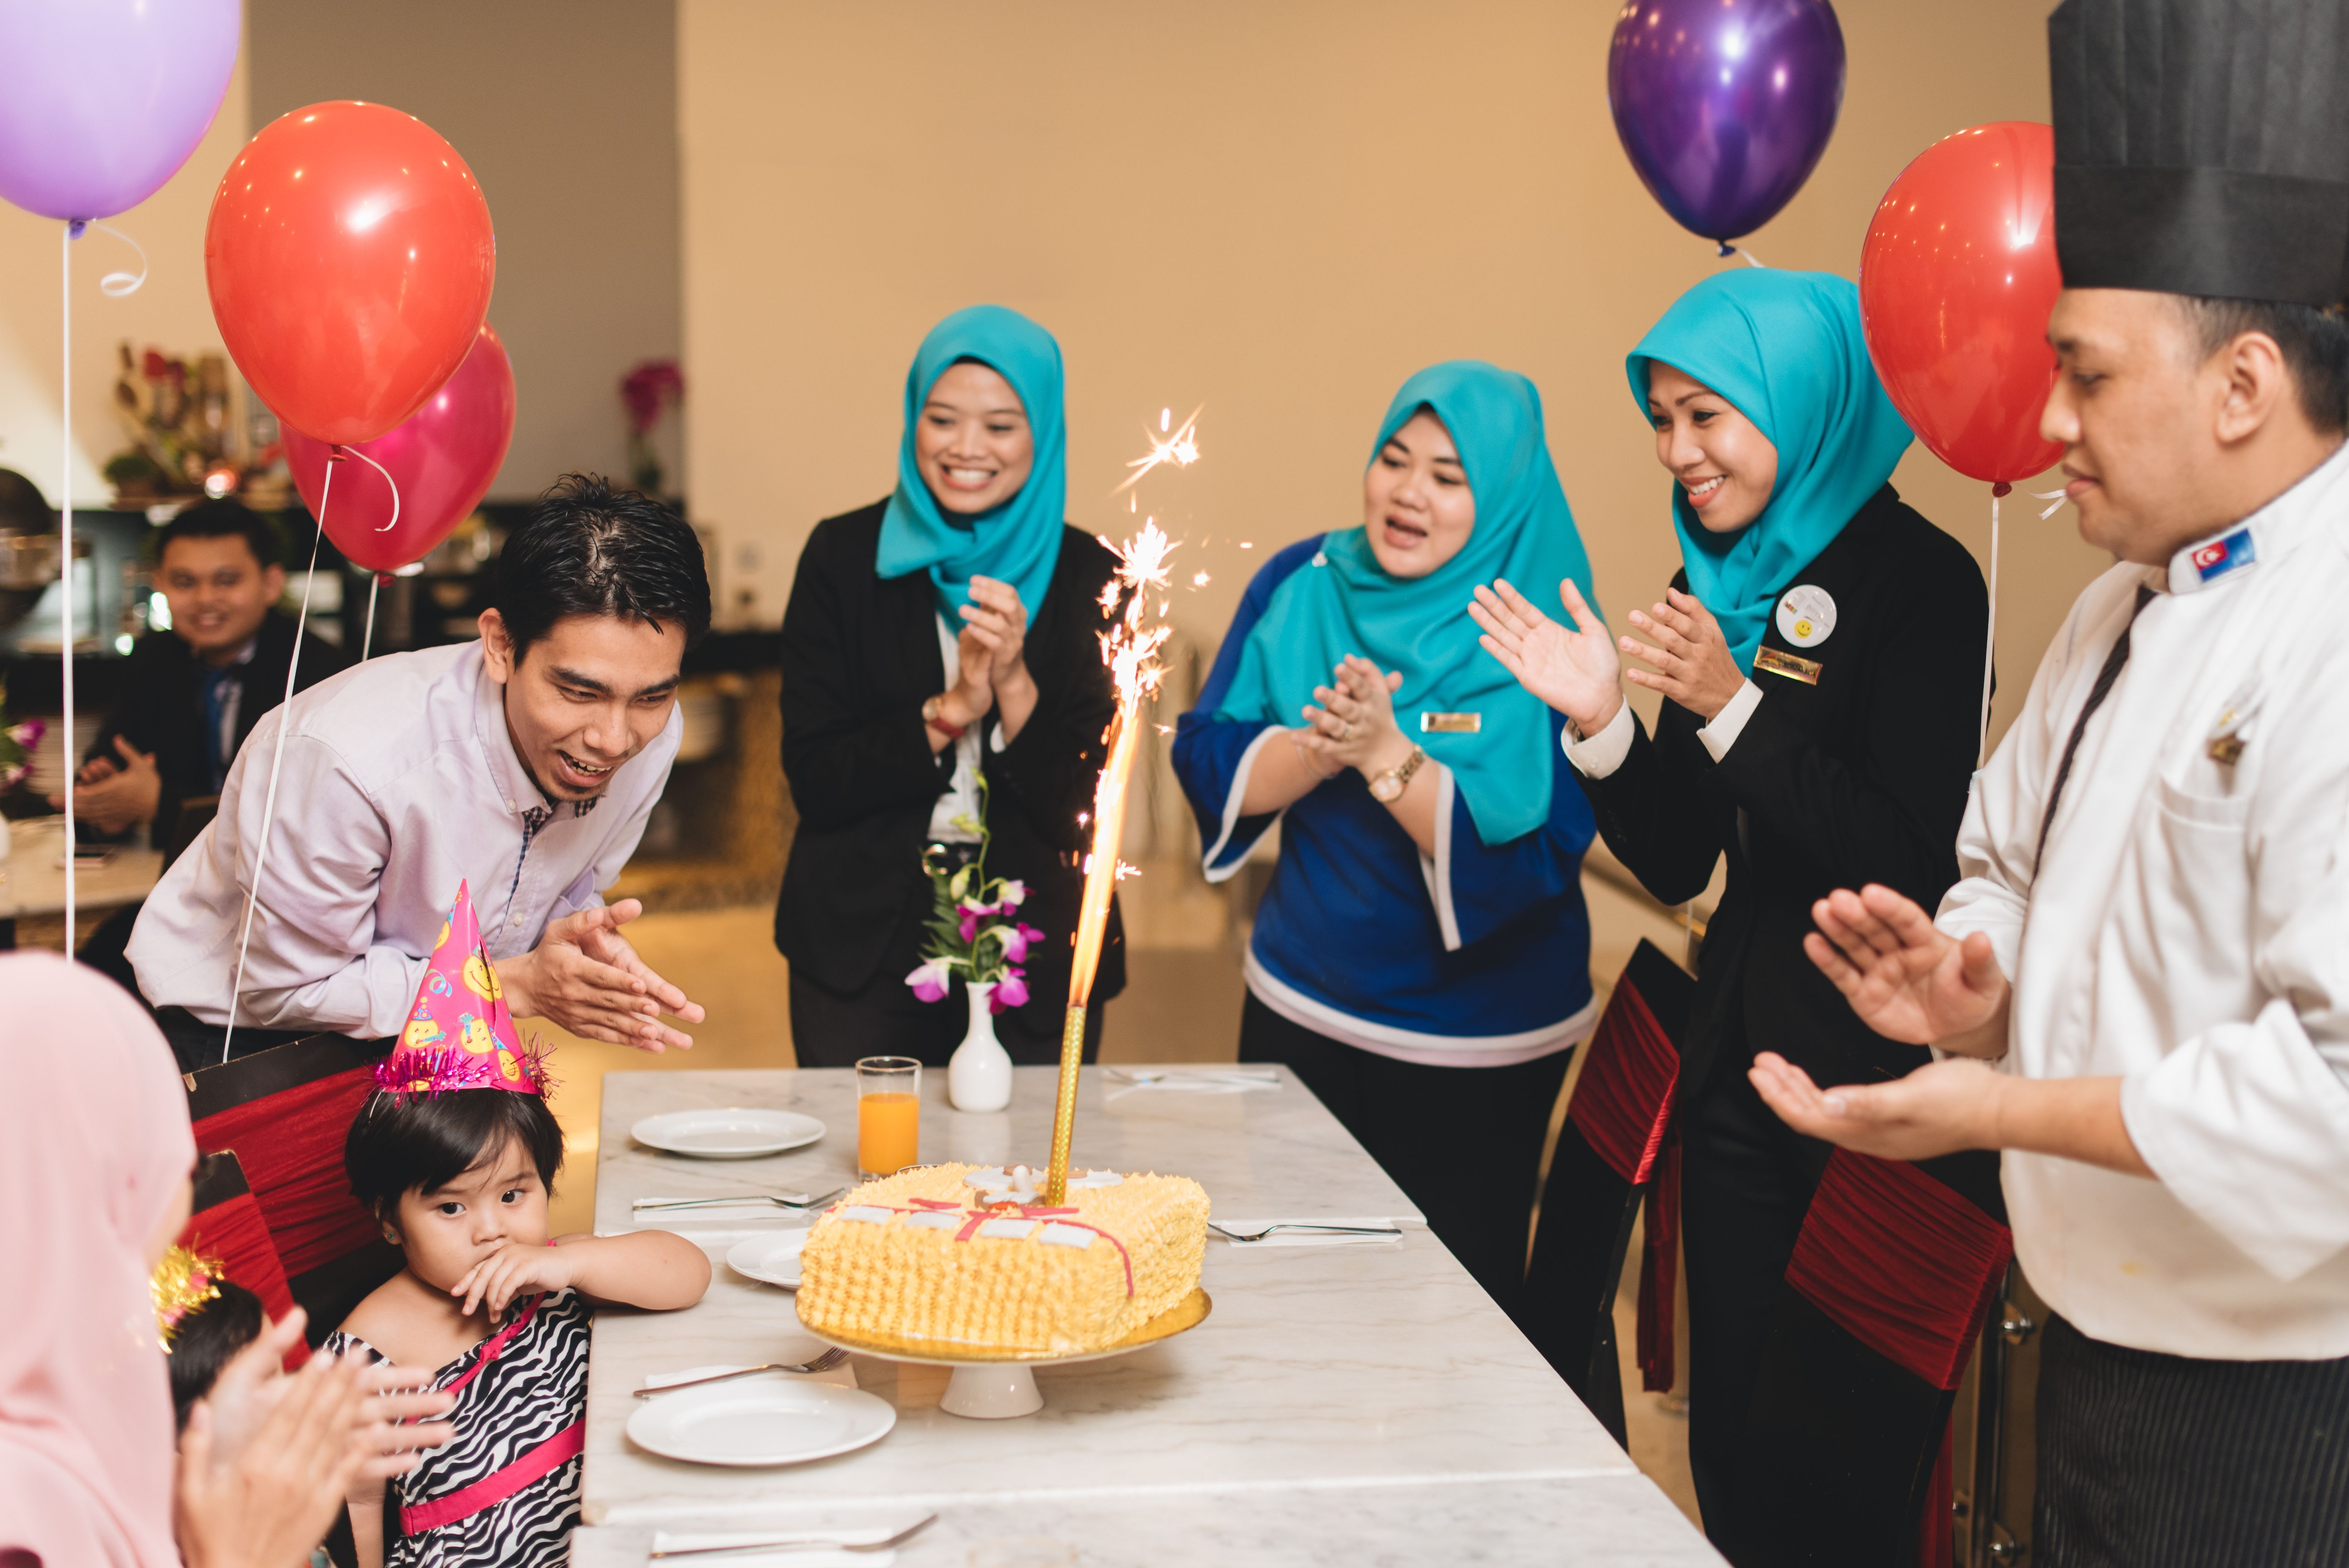 Join celebrate birthday party at RYAbySURIA Johor Bahru